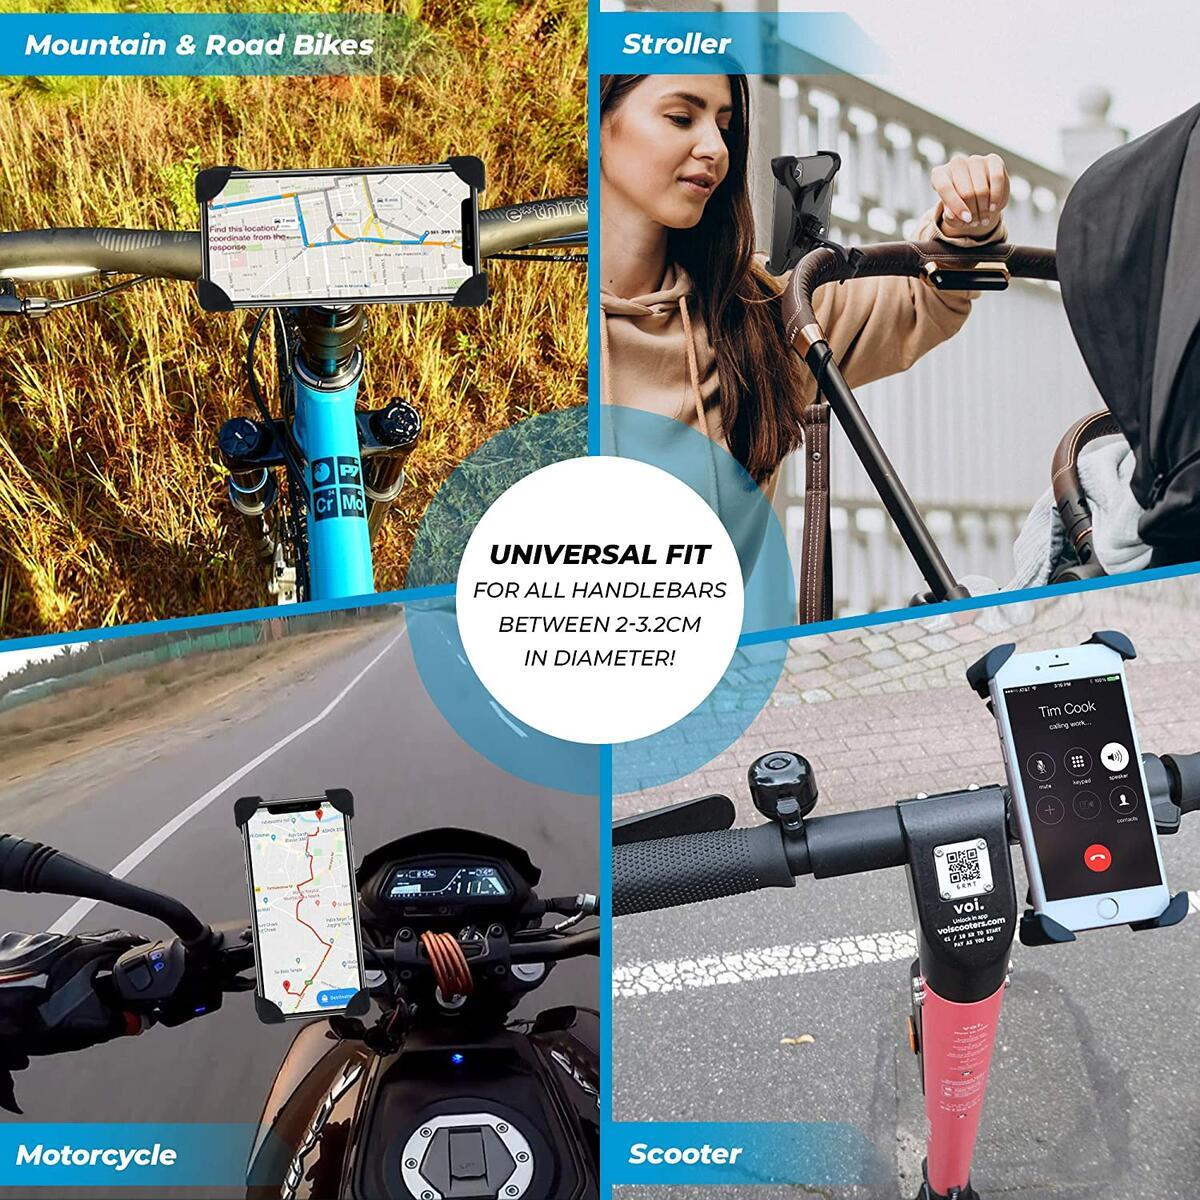 Extra Mile Direct Bike Phone Holder Mount iPhone Android Cell Phones Handlebar Accessories - Motorcycle Scooter Cruiser Electric Road Bicycle Mountain Bikes - Quick Release Anti Shake Lock Clamp